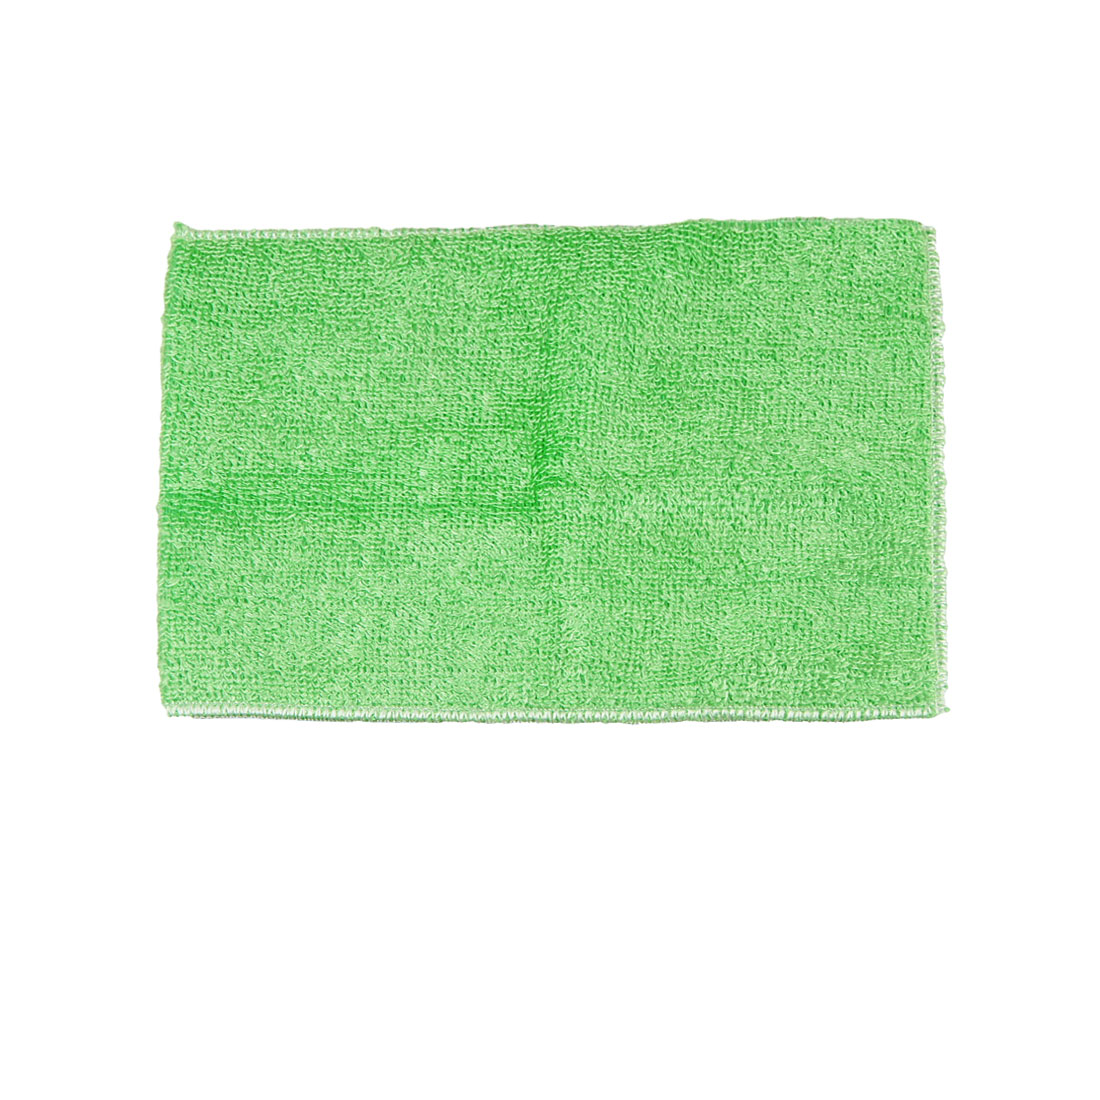 "8.8"" x 7"" Bamboo Fiber Dish Wash Cloth Clean Towel Green for Kitchen"